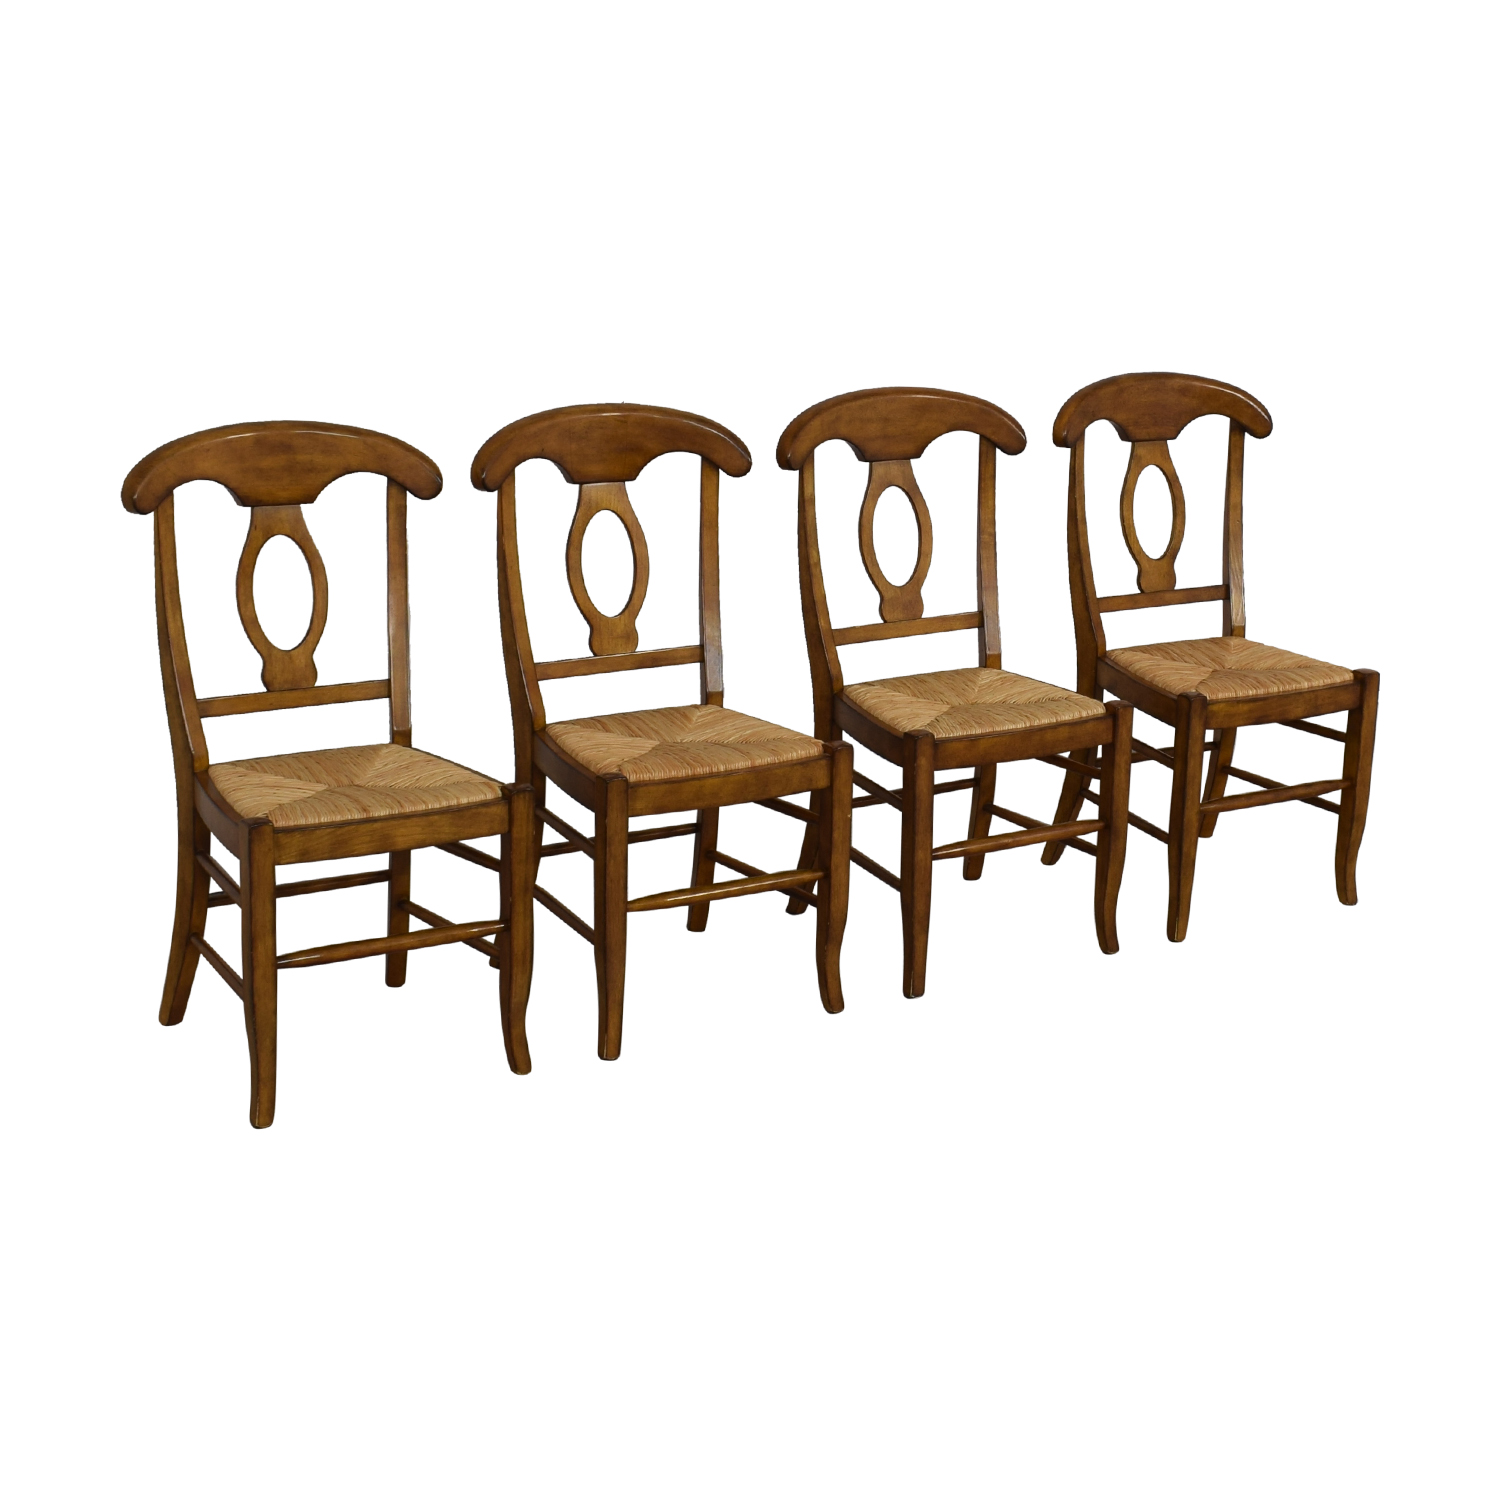 shop Pottery Barn Pottery Barn Dining Chairs online